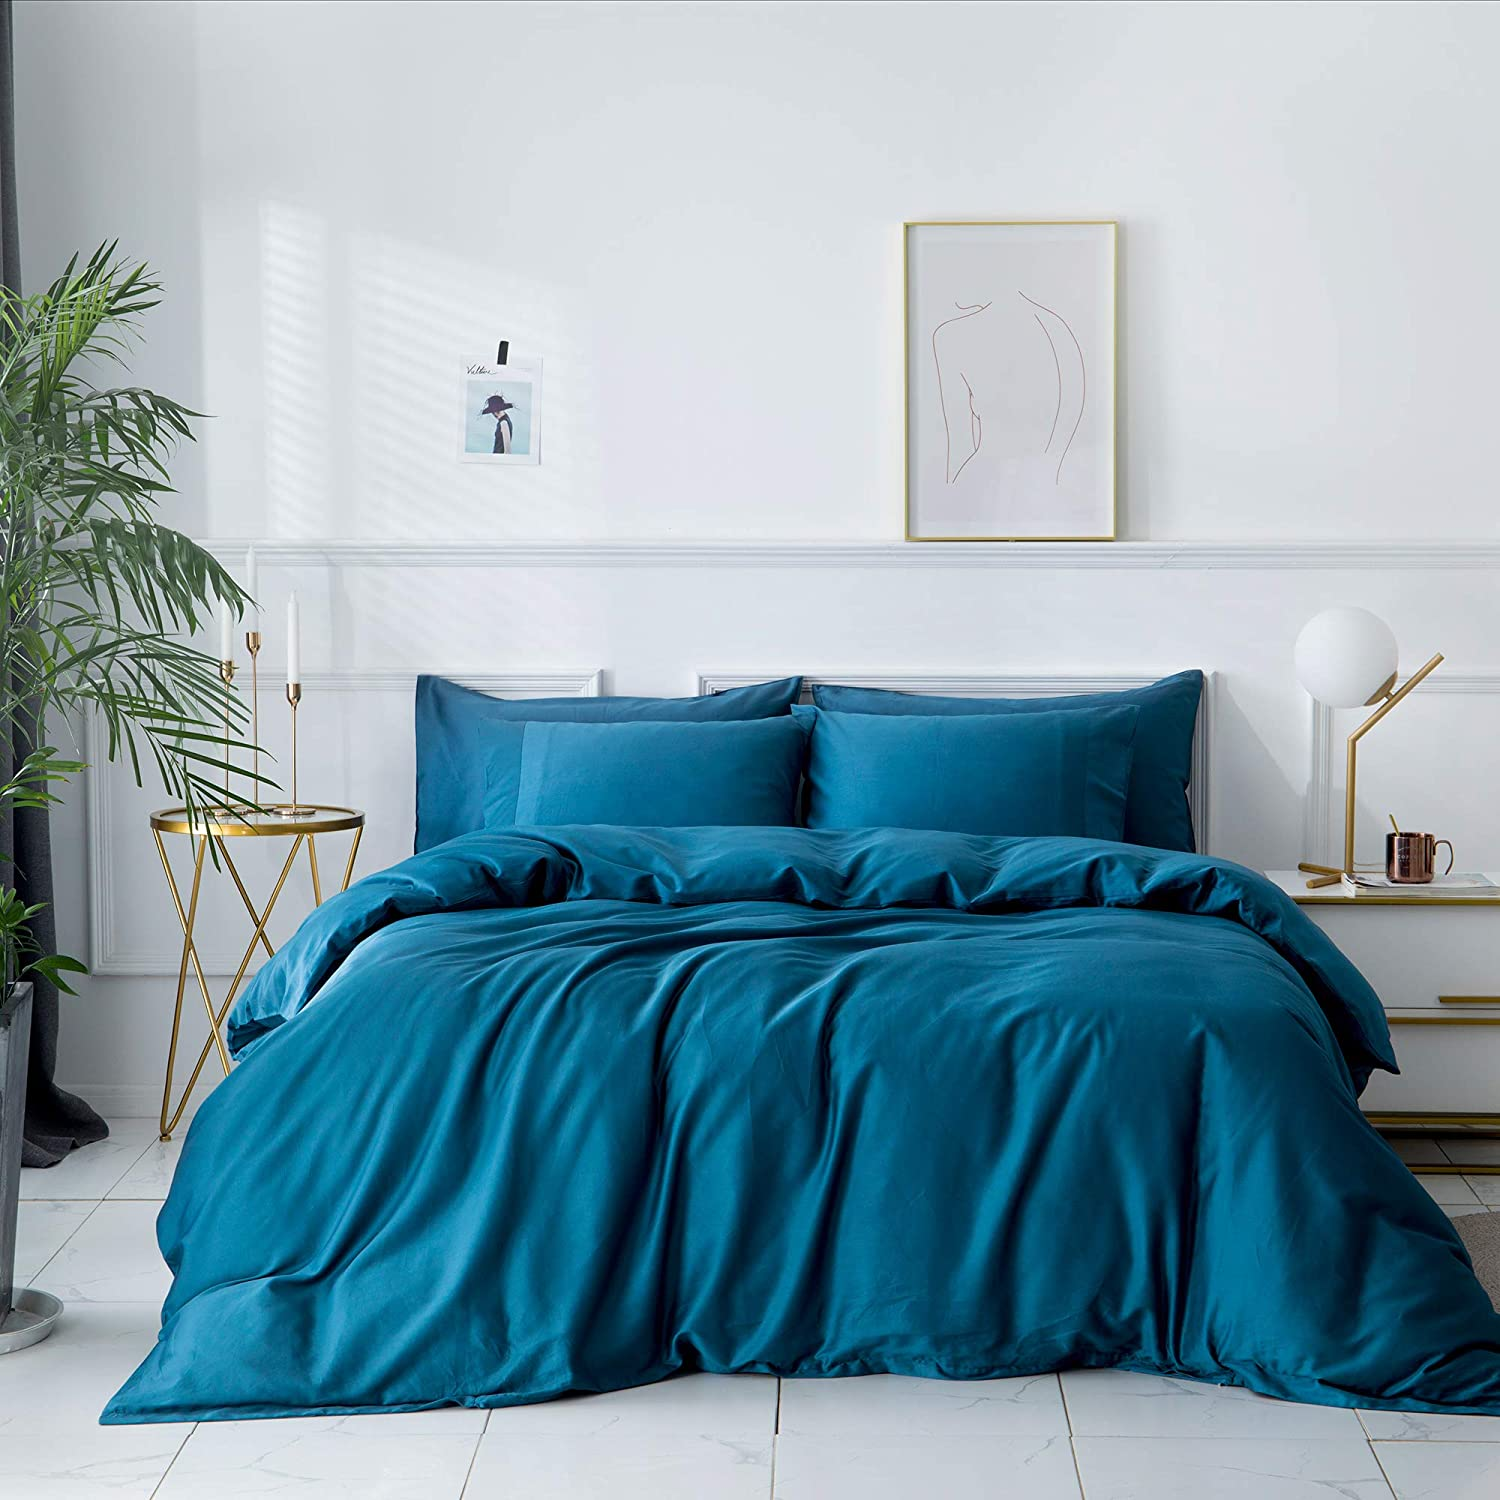 ZONDAWIND 5-Piece Egyptian Cotton Duvet Cover Queen with Zipper Closure, High Thread Count Long Staple Sateen Weave Silky Soft Breathable Pima Quality Bed Linen-Queen, Turkish Teal